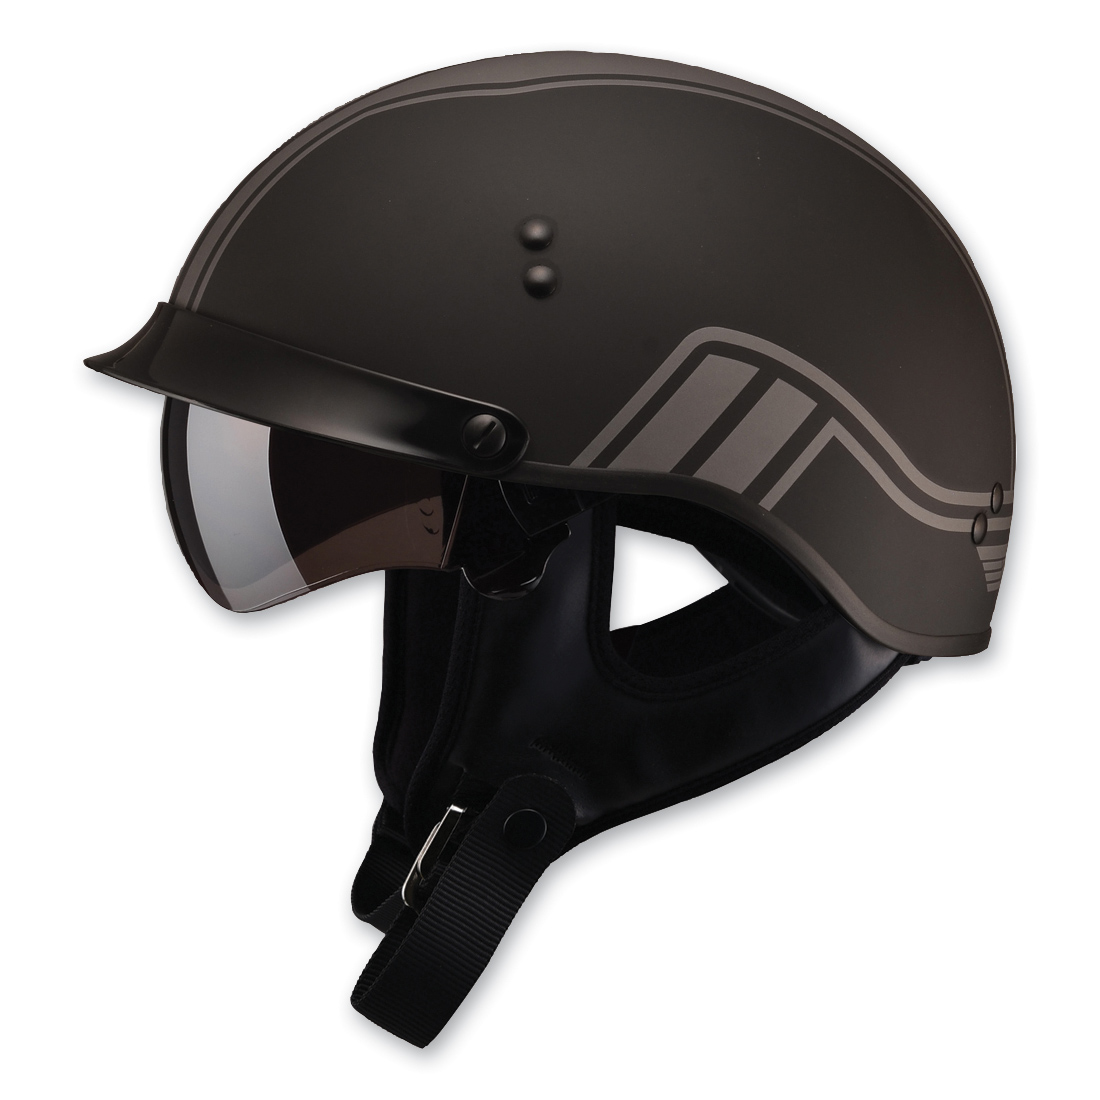 GMAX GM65 Full Dressed Twin Flat Black/Silver Half Helmet